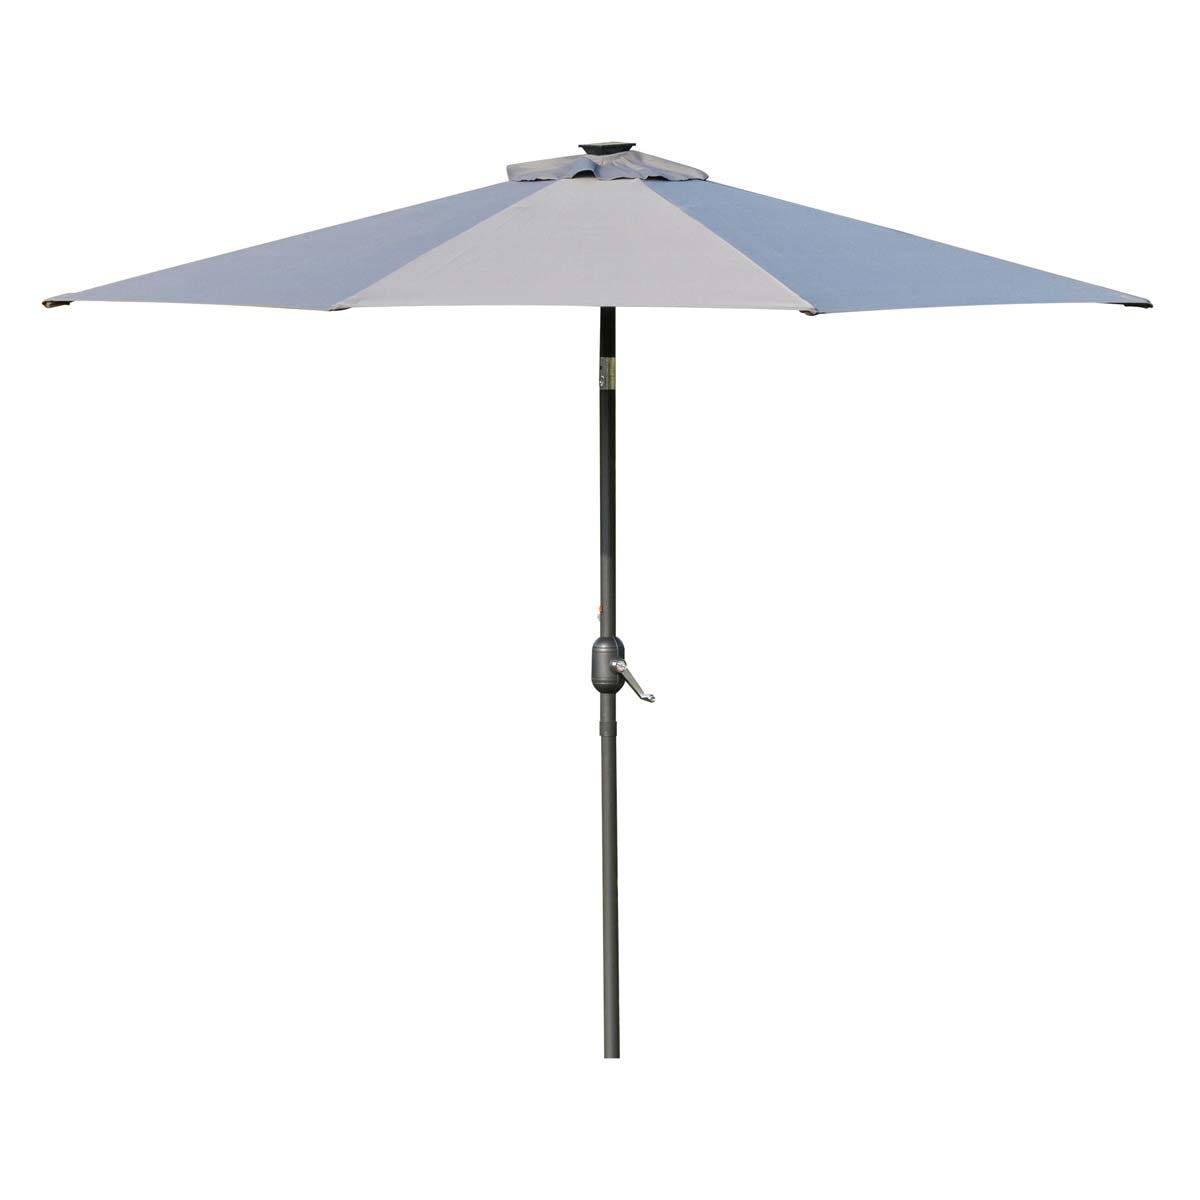 Outsunny 2.7m Parasol with LED Lighting (base not included) - Grey